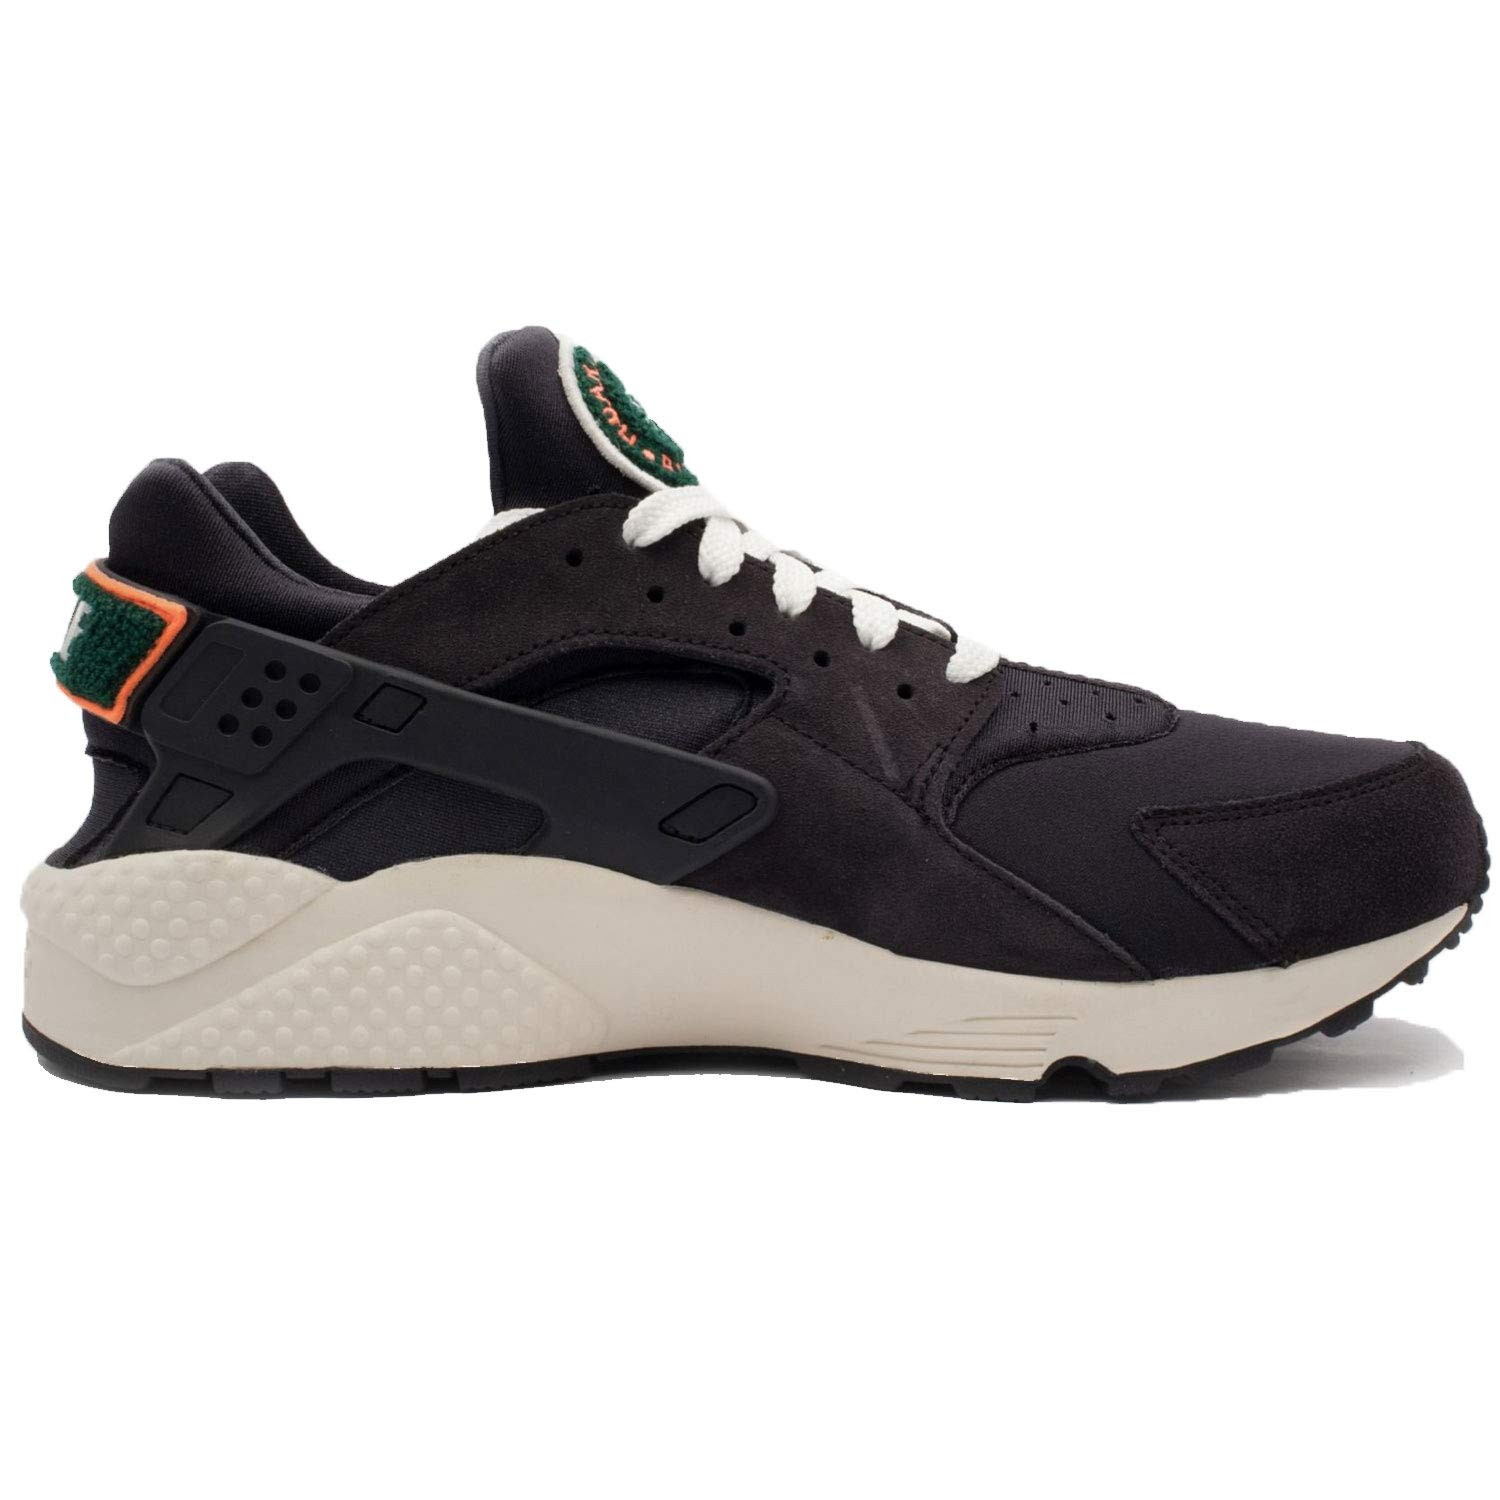 size 40 81d57 147a3 Galleon - NIKE Air Huarache Run Premium Men s Shoes Oil Grey Sail-Rainforest  704830-015 (8 D(M) US)